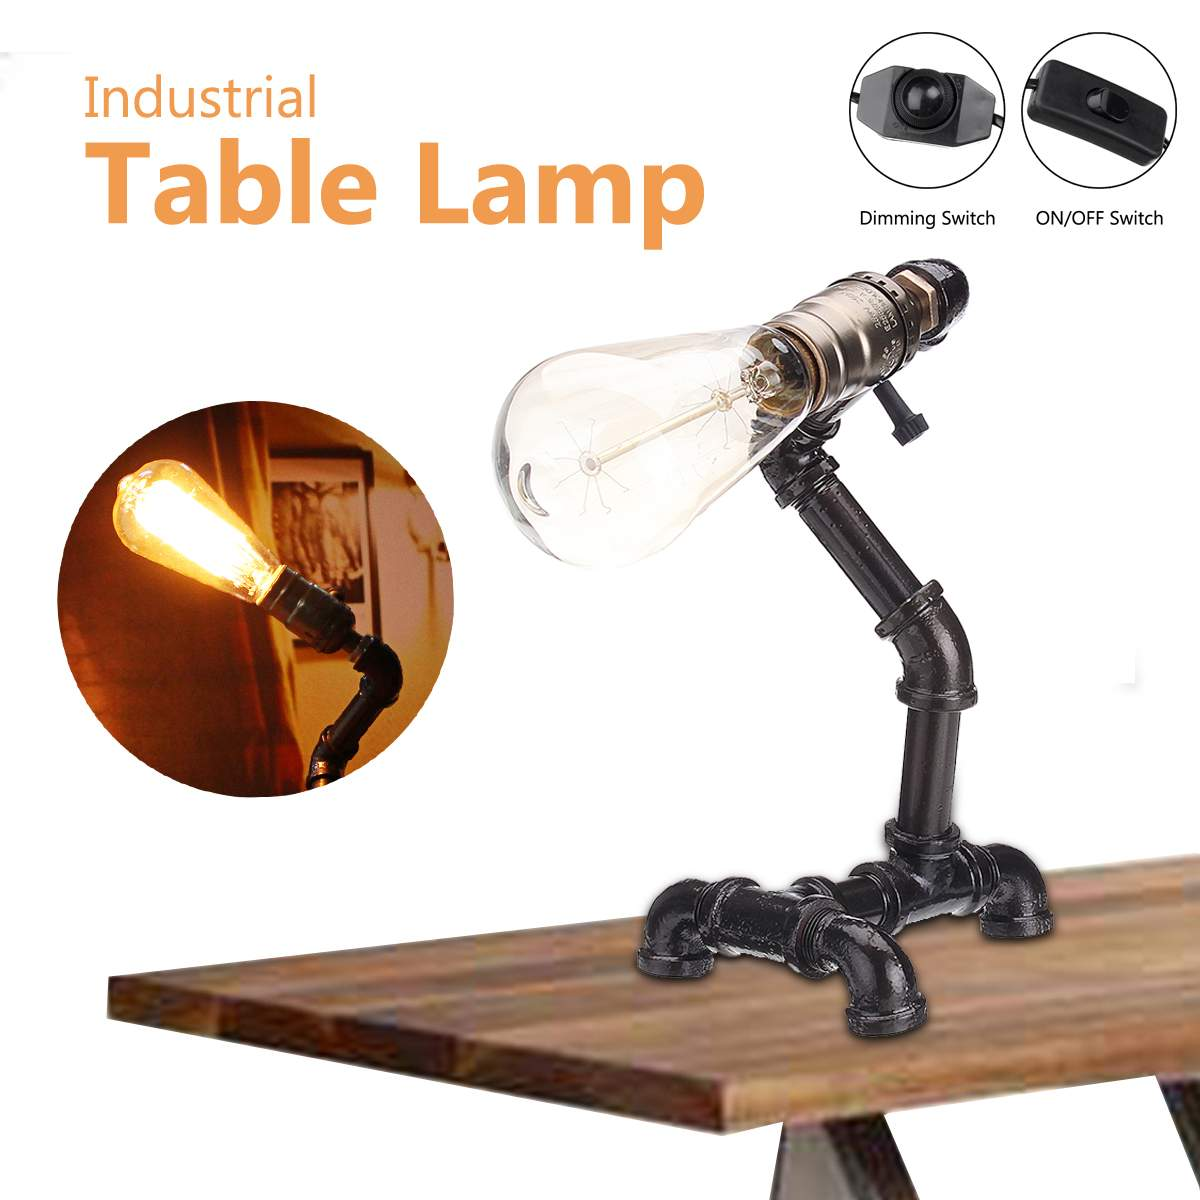 110 240V Vintage E27 Bulb Industrial Pipe Table Lamp LED Table Desk Lamp Lantern Fixture Indoor Home Bedroom Decoration Gifts|Table Lamps| |  - title=